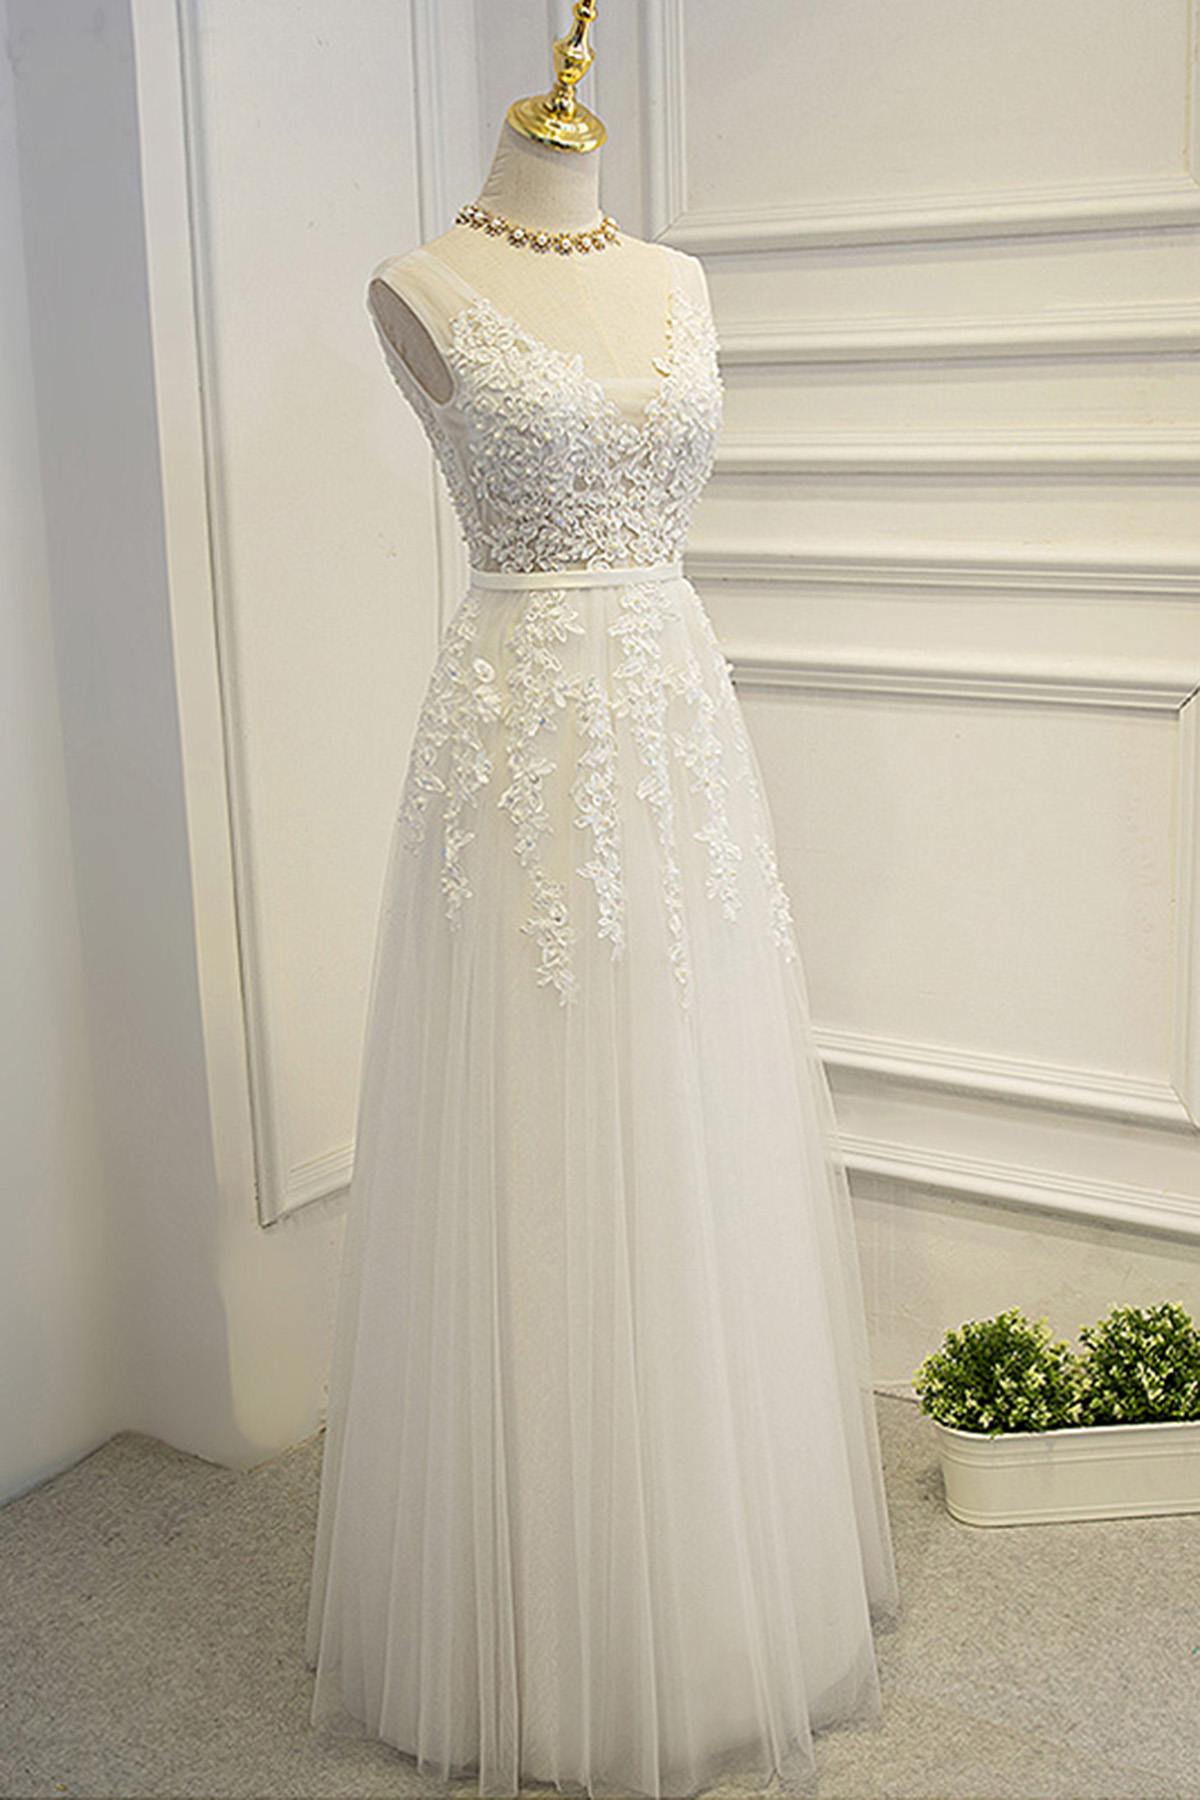 Ivory halter wedding dresses